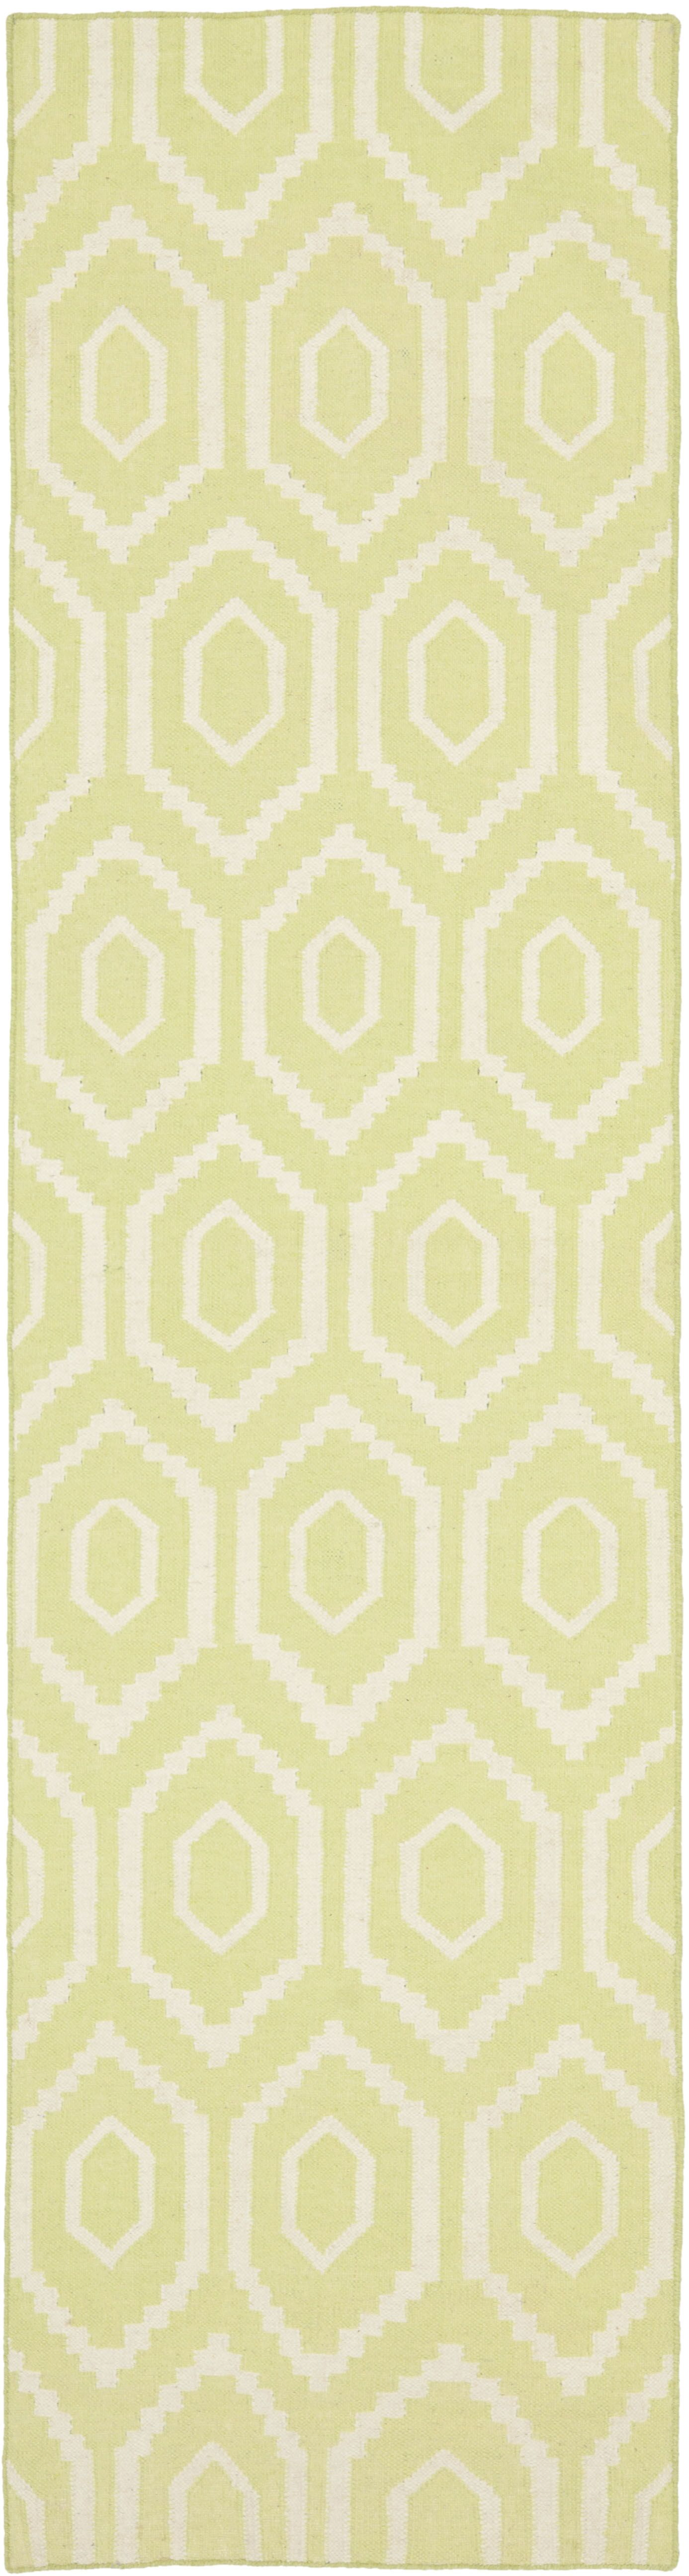 Hand-Woven Wool Green/Ivory Area Rug Rug Size: Runner 2'6